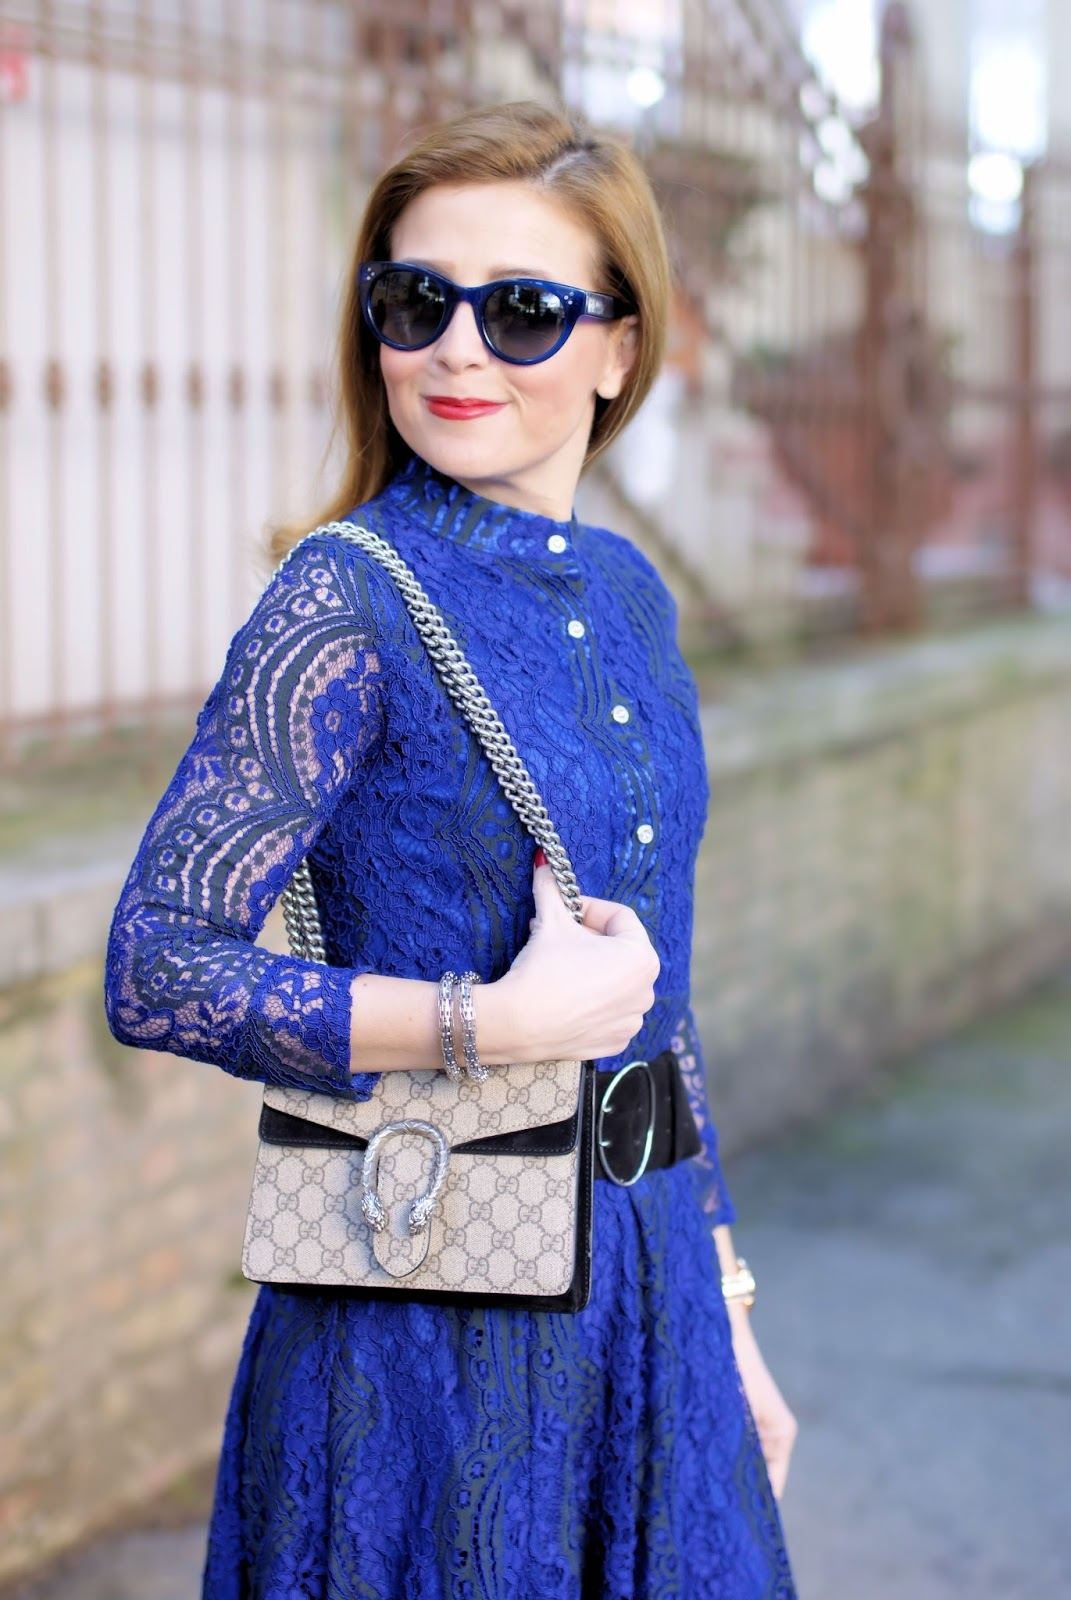 What to wear on Easter: my outfit idea with a blue lace dress and Gucci bag on Fashion and Cookies fashion blog, fashion blogger style